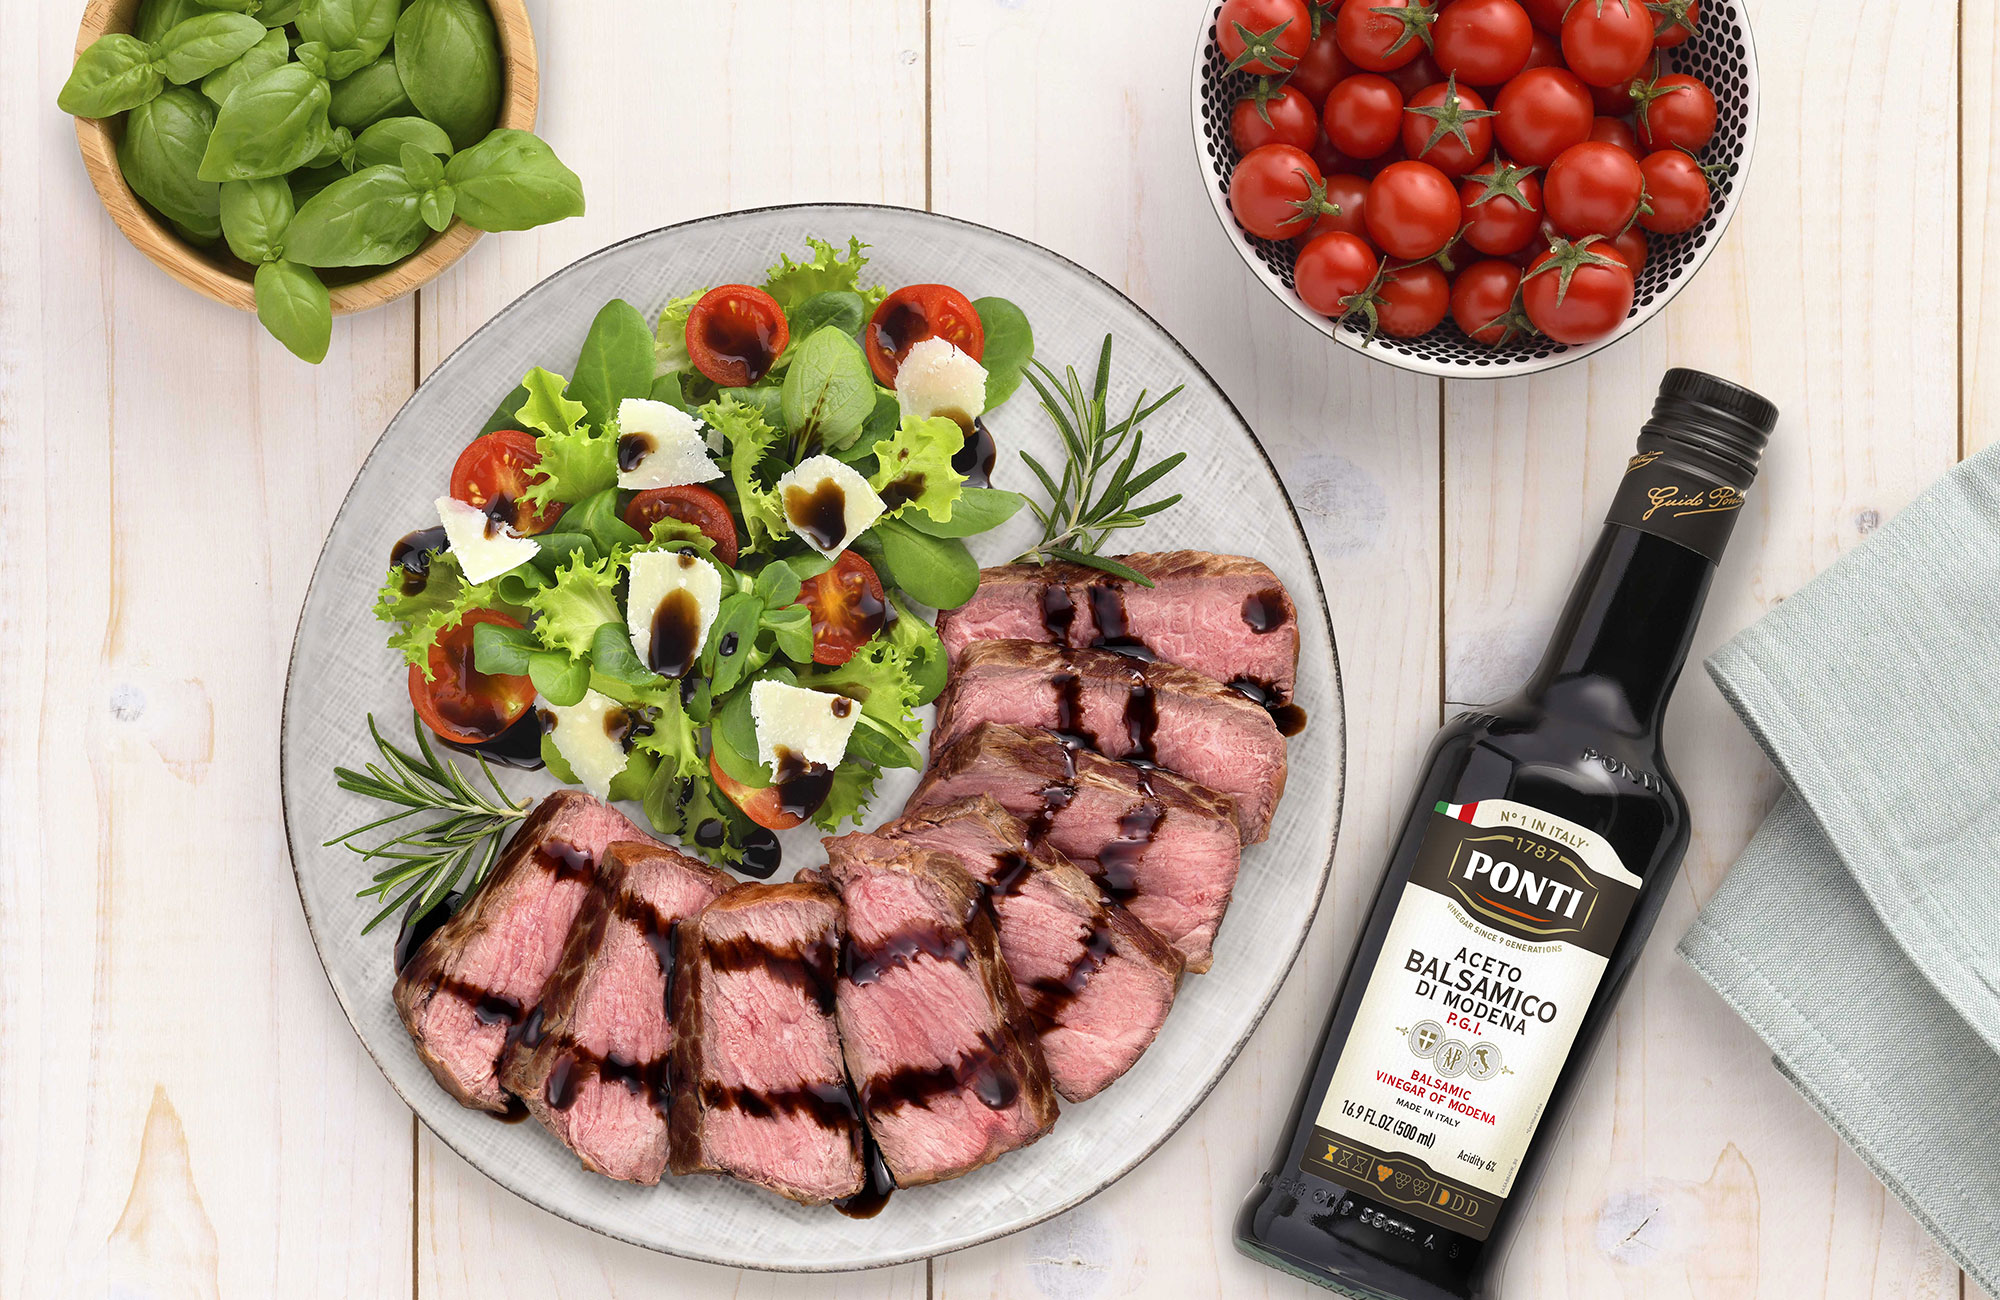 Sirloin beef steak with Ponti Balsamic Vinegar of Modena P.G.I. - Ponti